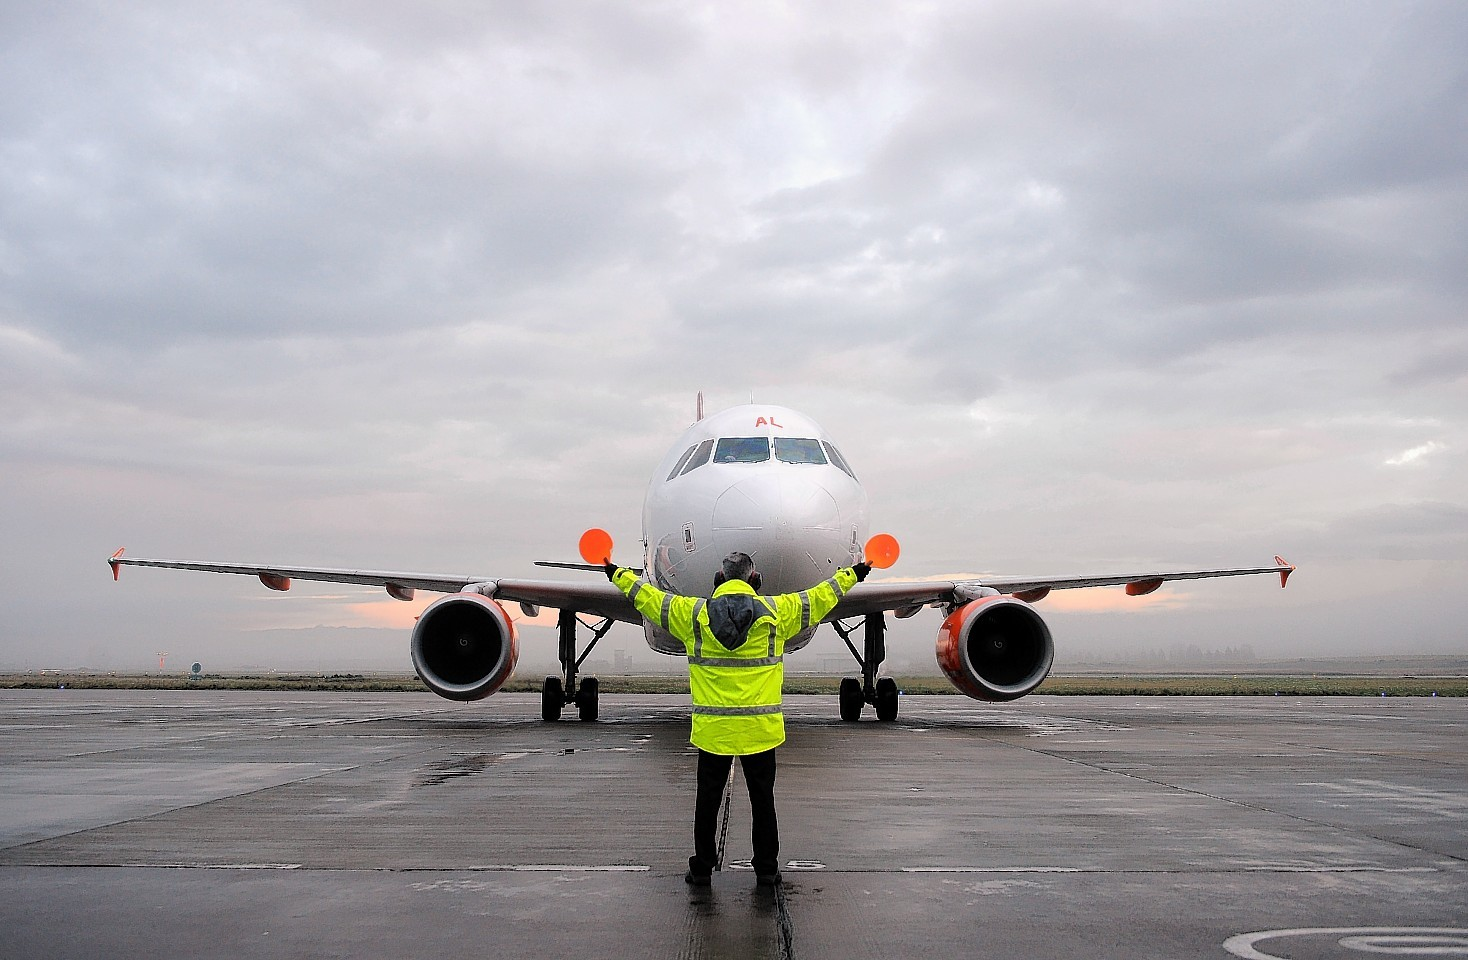 Apron operation staff at Inverness Airport could lose their jobs